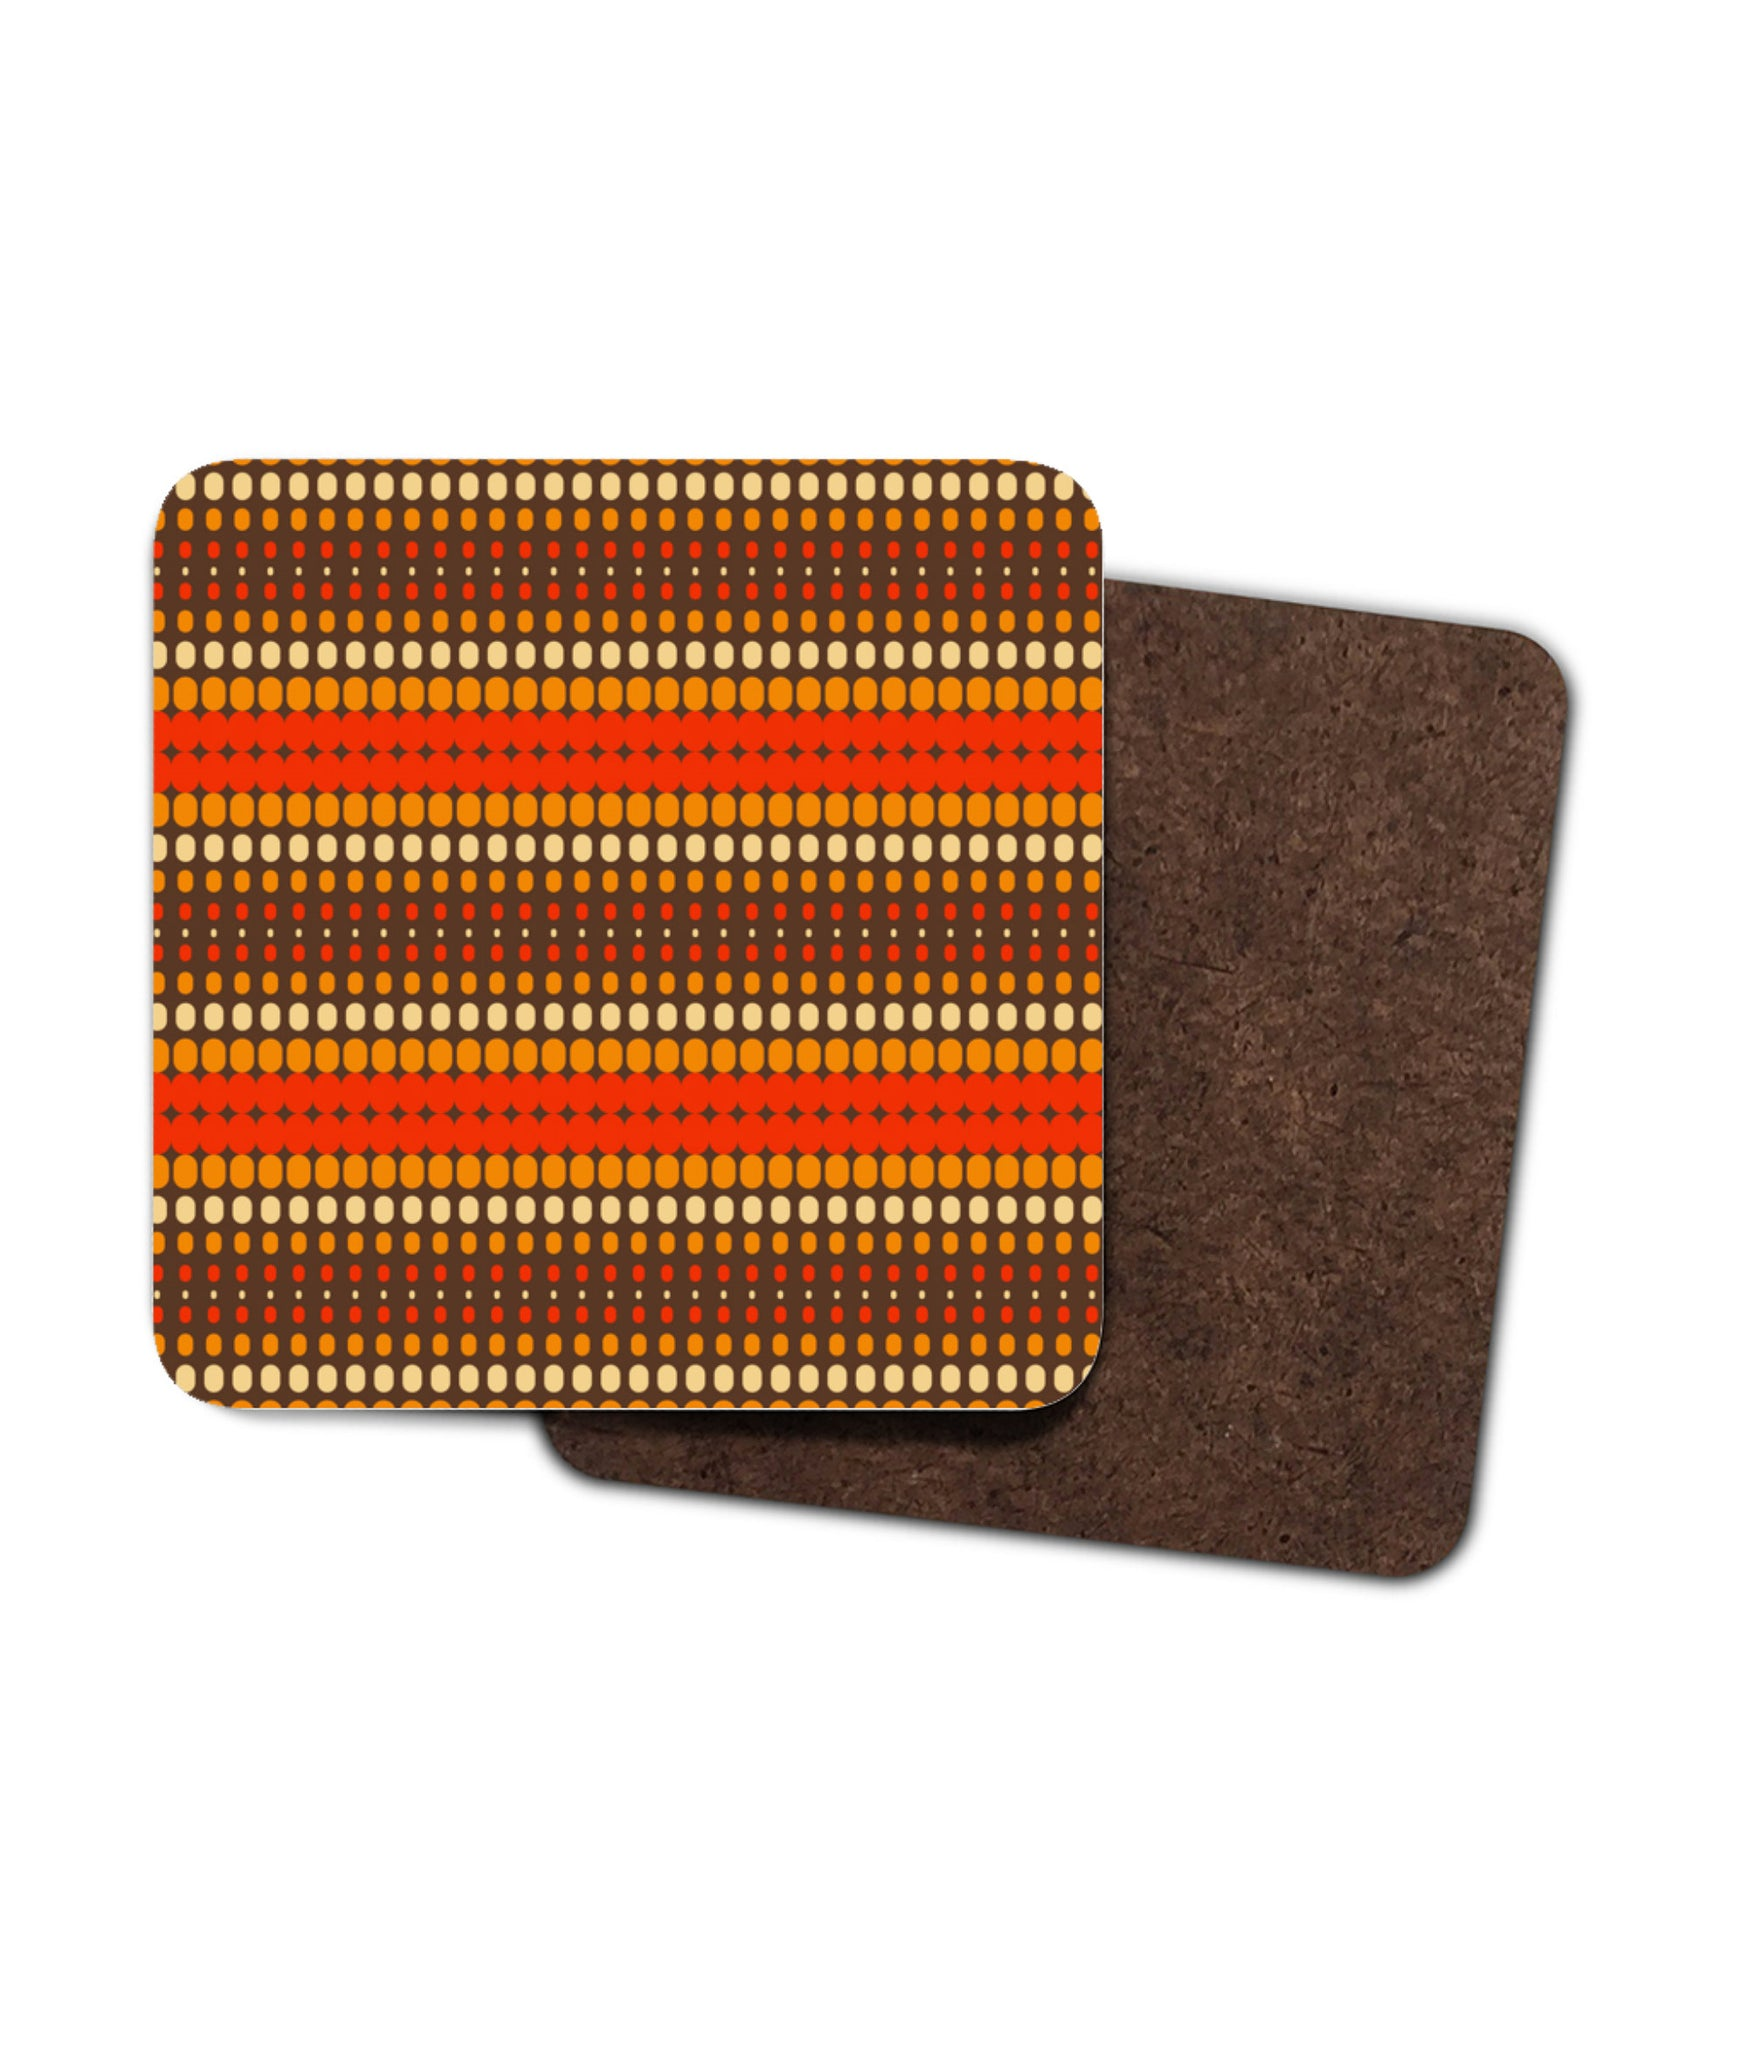 Vintage Retro Striped Coasters. Set of Two or Four in 1960's 1970's Style. Orange, Red and Brown.